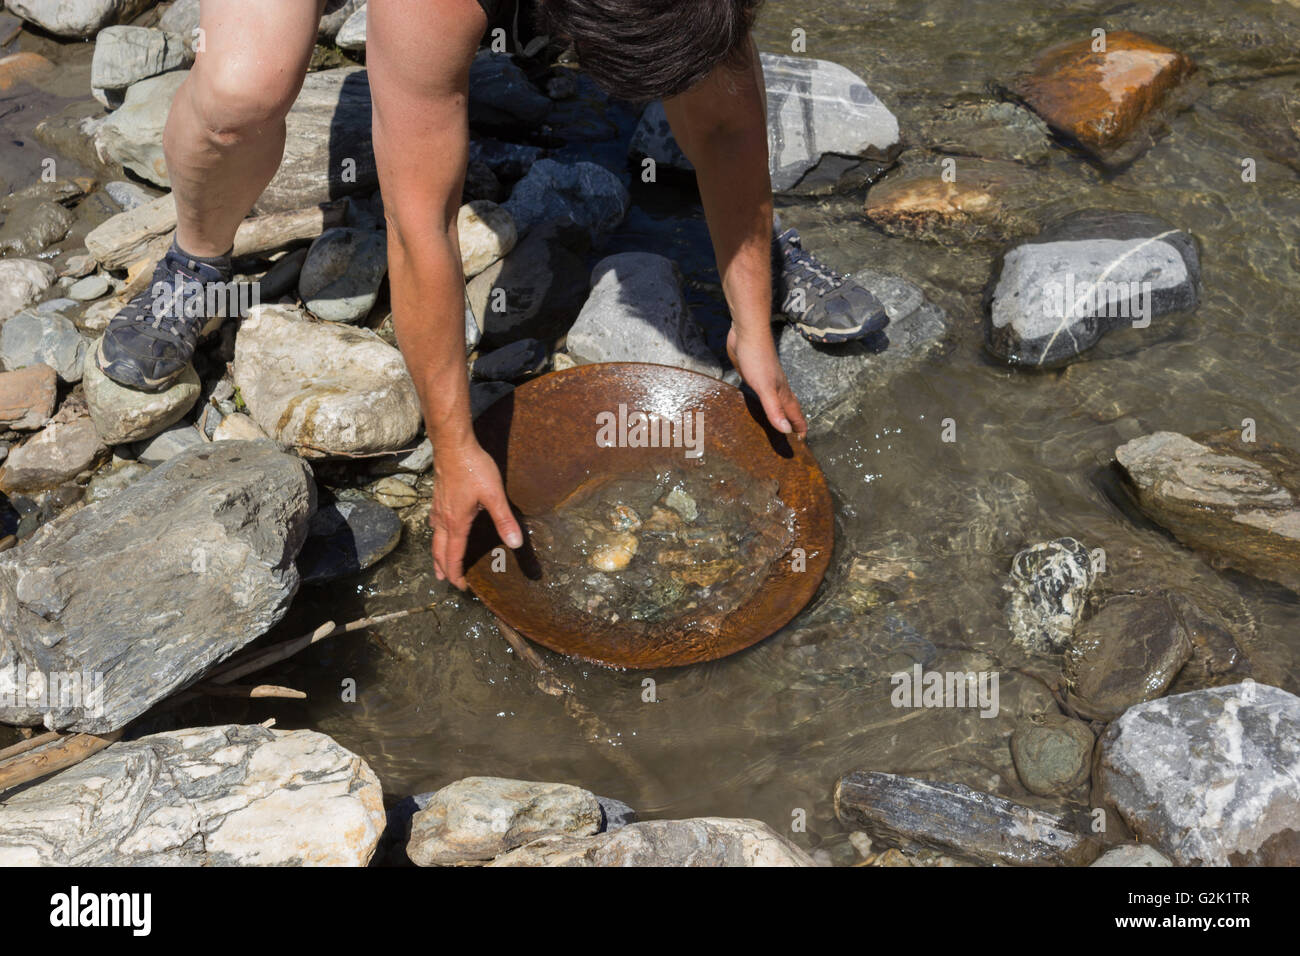 woman Panning for Alluvial Gold, using the traditional panning method - Stock Image